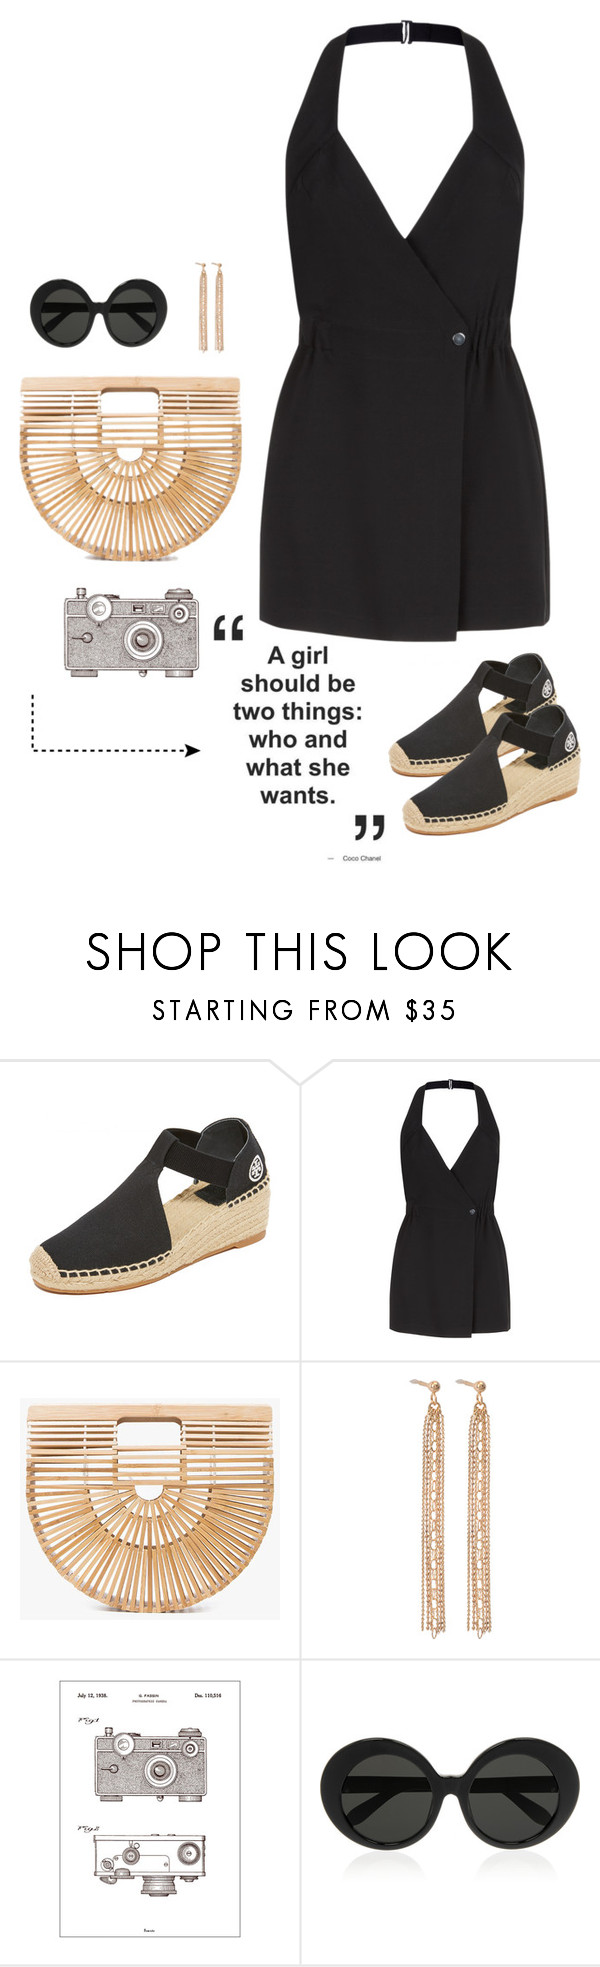 """5.18.17: She Wants"" by momlifeandstyle ❤ liked on Polyvore featuring Tory Burch, Cult Gaia, Charlotte Chesnais, Bomedo and Linda Farrow"